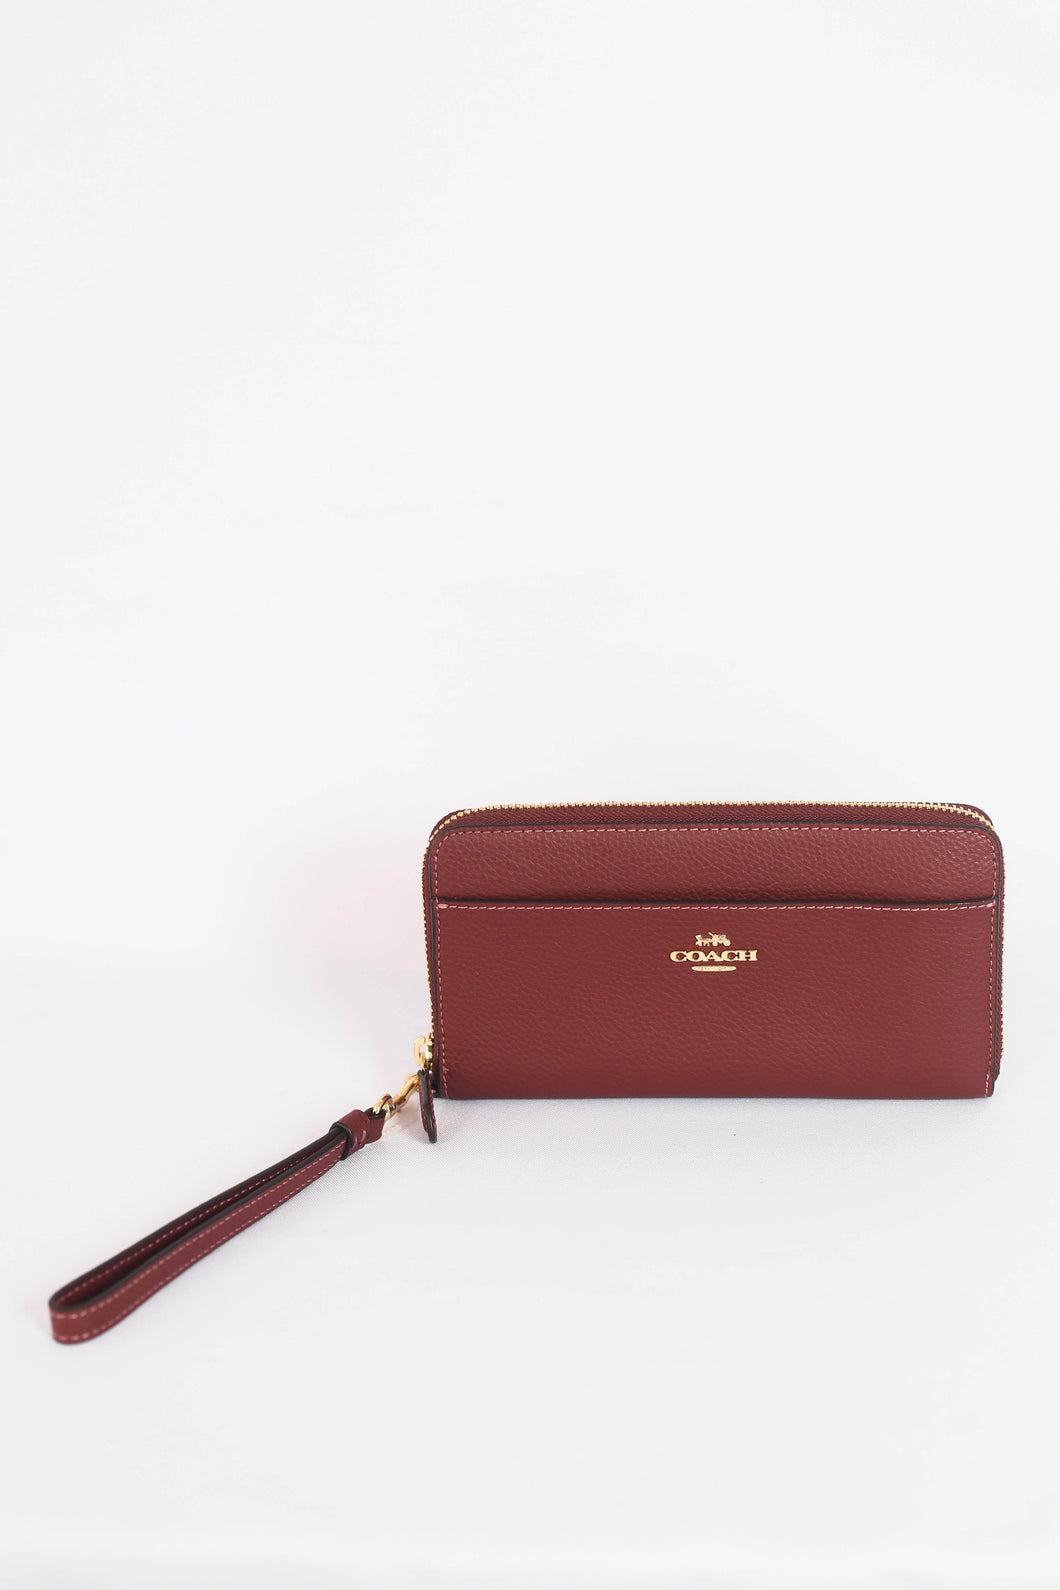 Coach Accordion Zip Wallet With Strap F76517 IMWIN In Wine